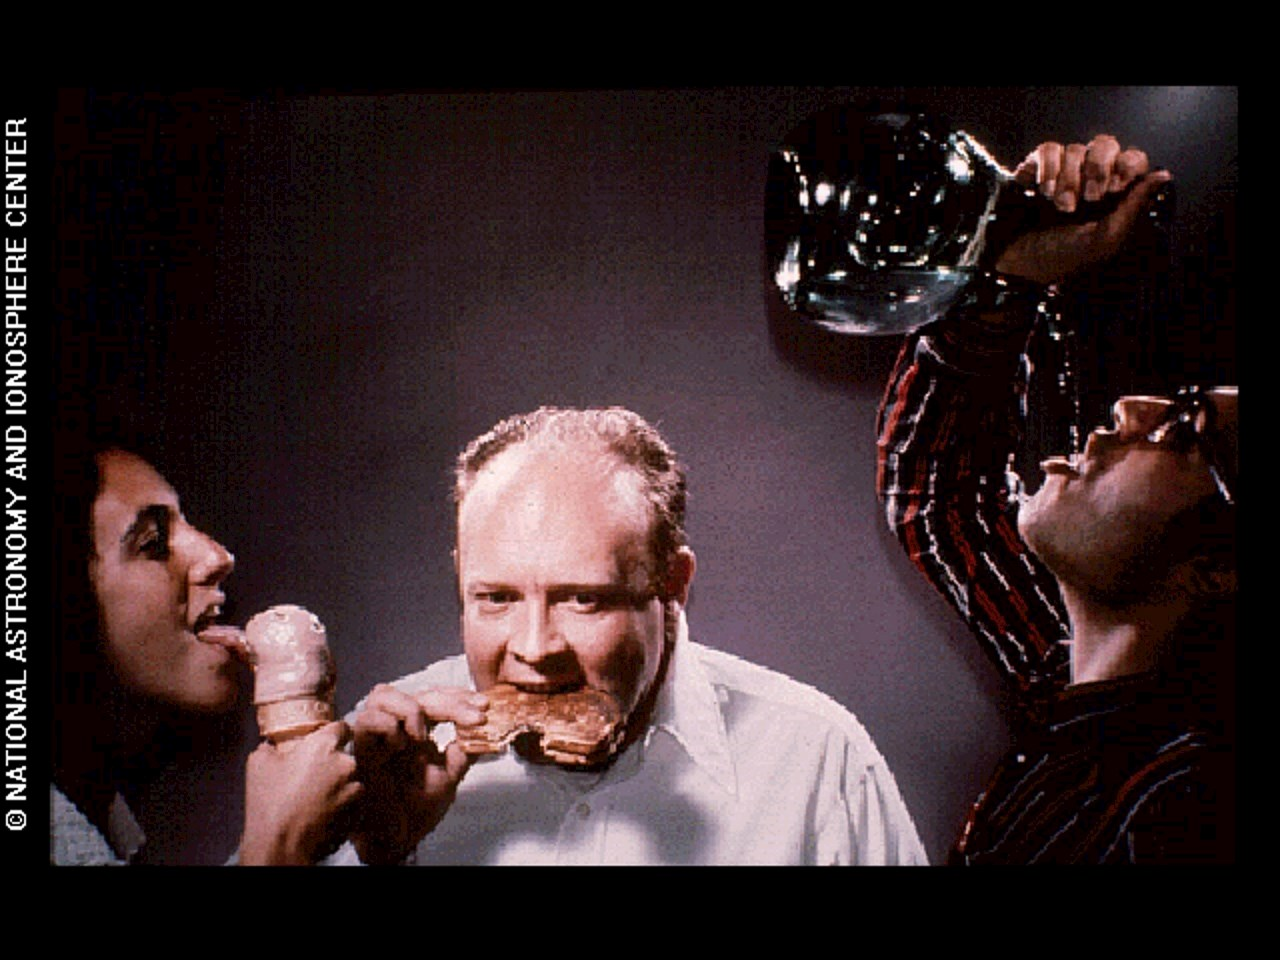 This image depicts humans drinking, licking and eating as modes of feeding